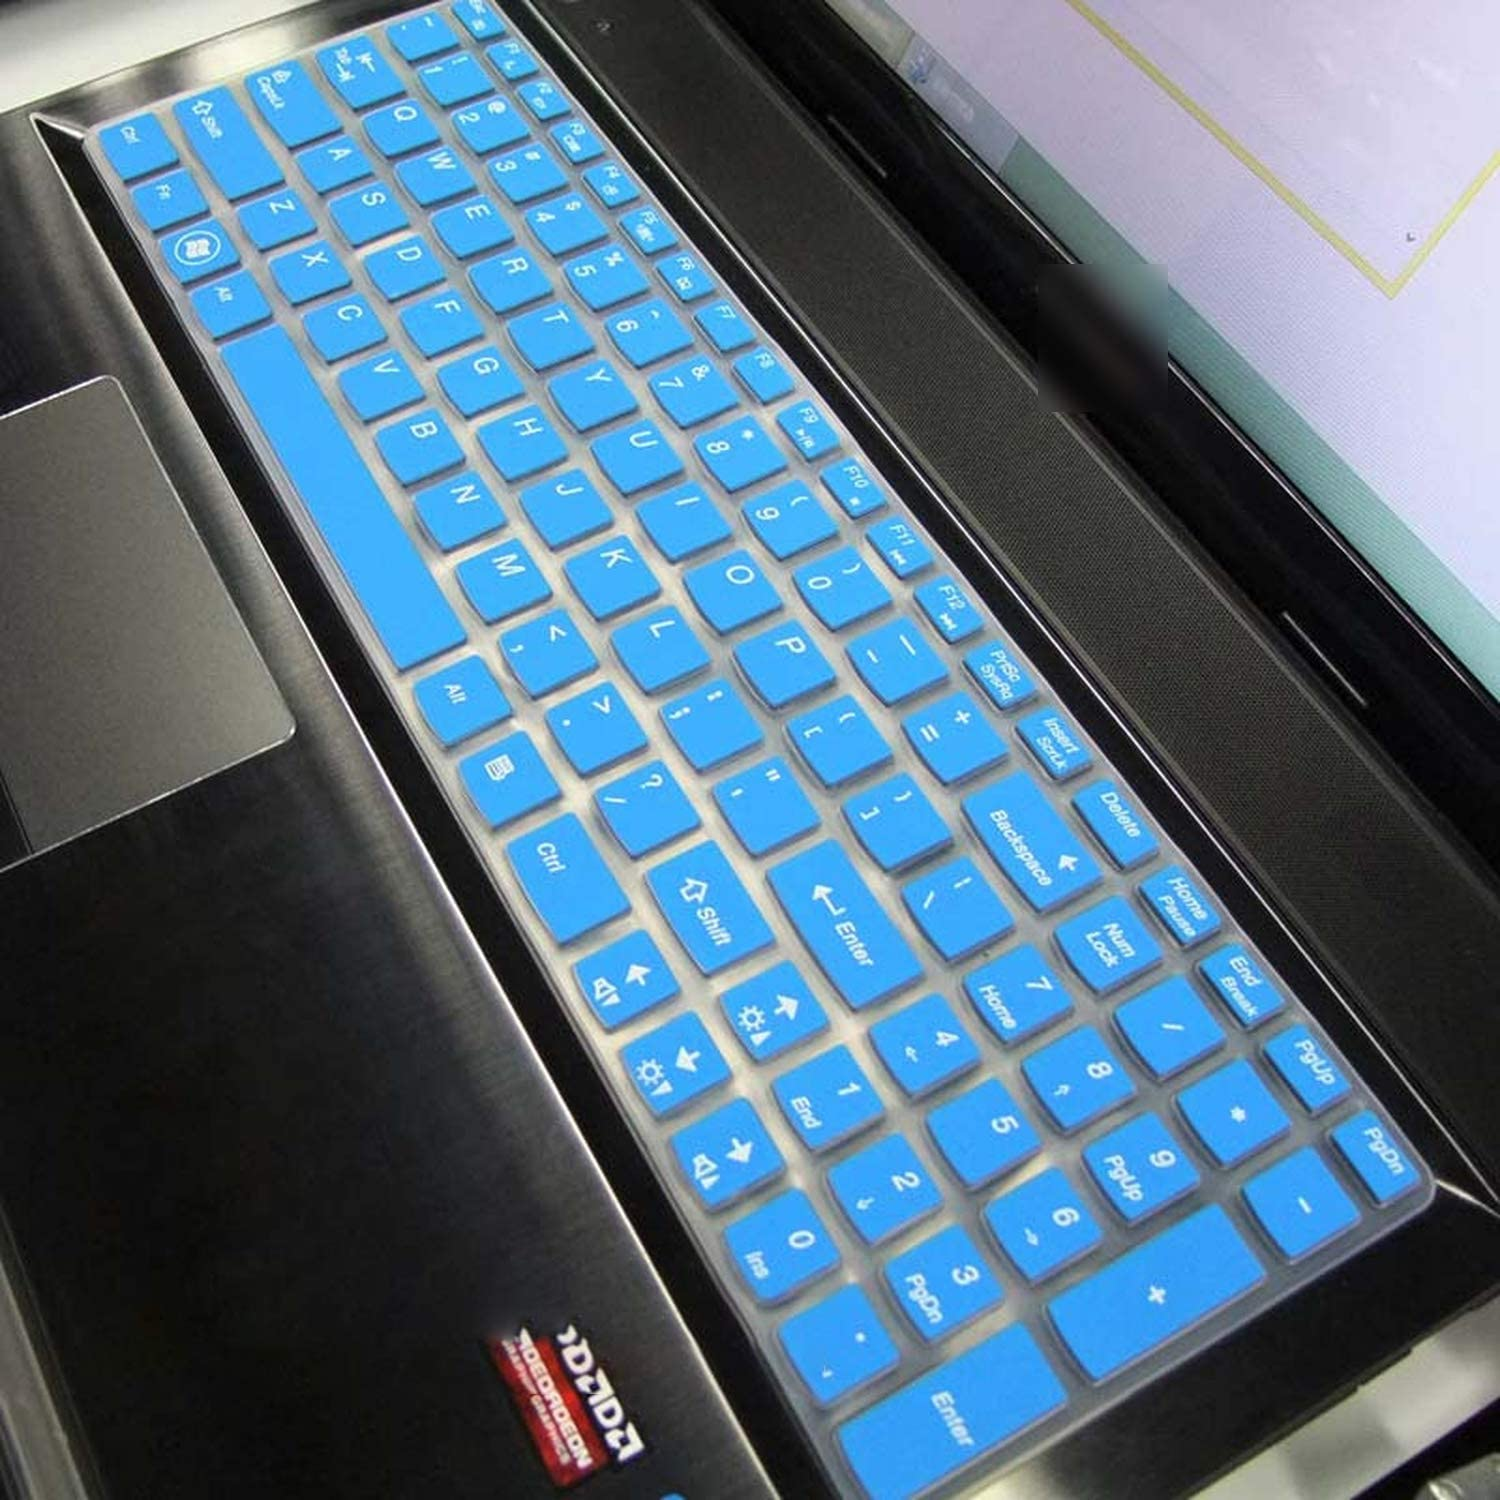 Silicone Keyboard Protector Cover Skin for Lenovo Ideapad Z580 Z560 Z565 Z570 Z575 Z500 Z501 Z505 Z510 Z585 V580 V570 U510 S500-Gradualblue